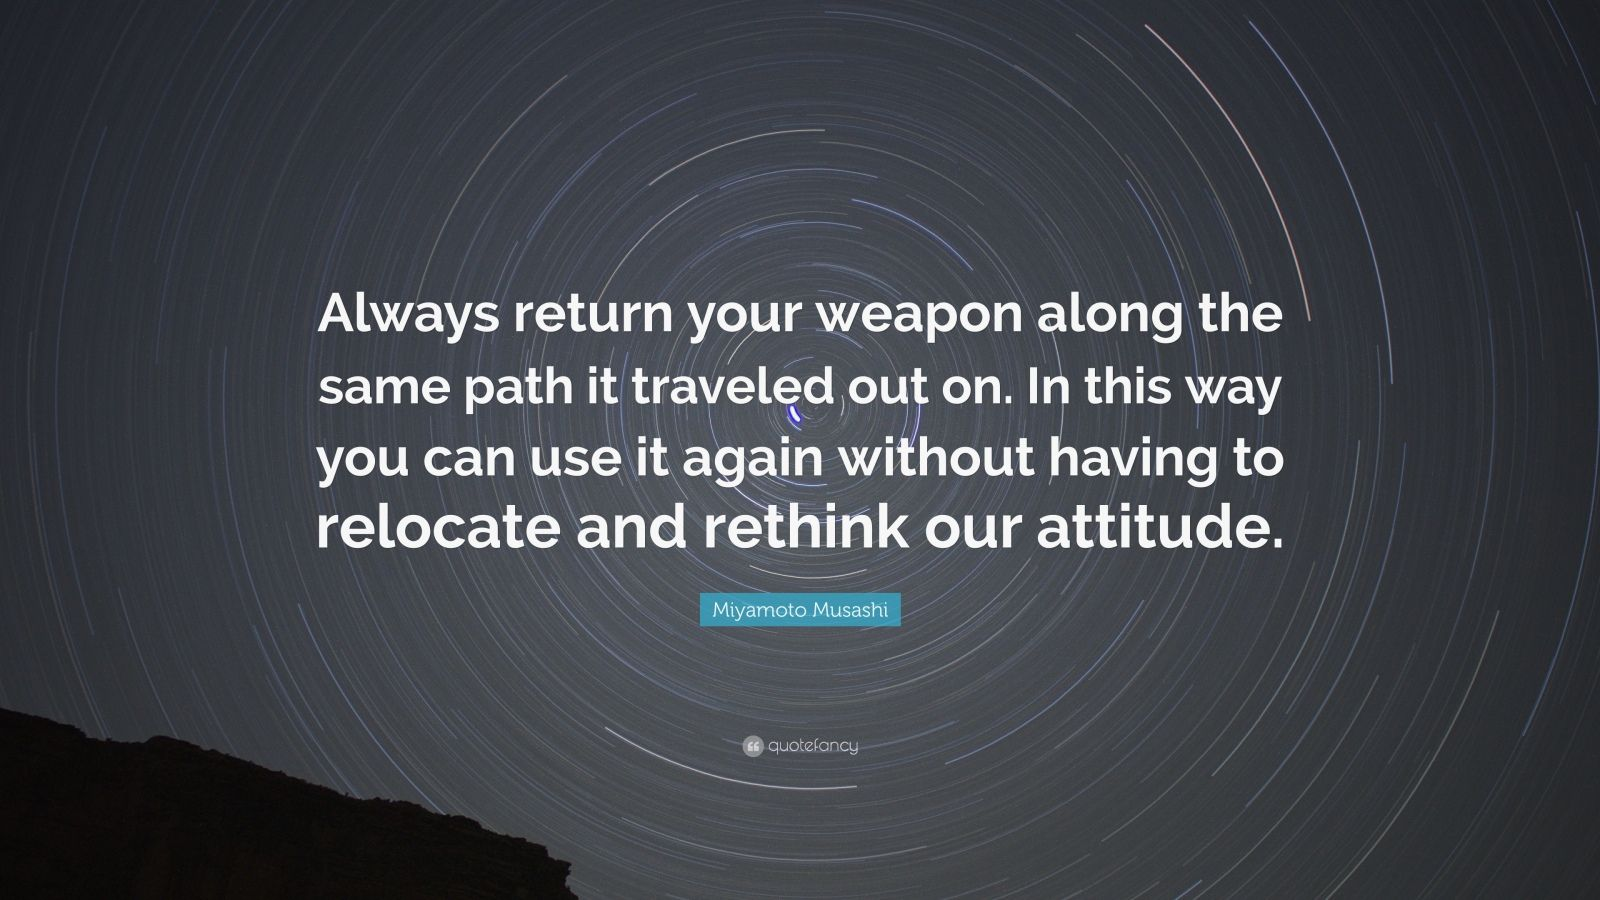 """Miyamoto Musashi Quote: """"Always return your weapon along the same path it traveled out on. In this way you can use it again without having to relocate and rethink our attitude."""""""